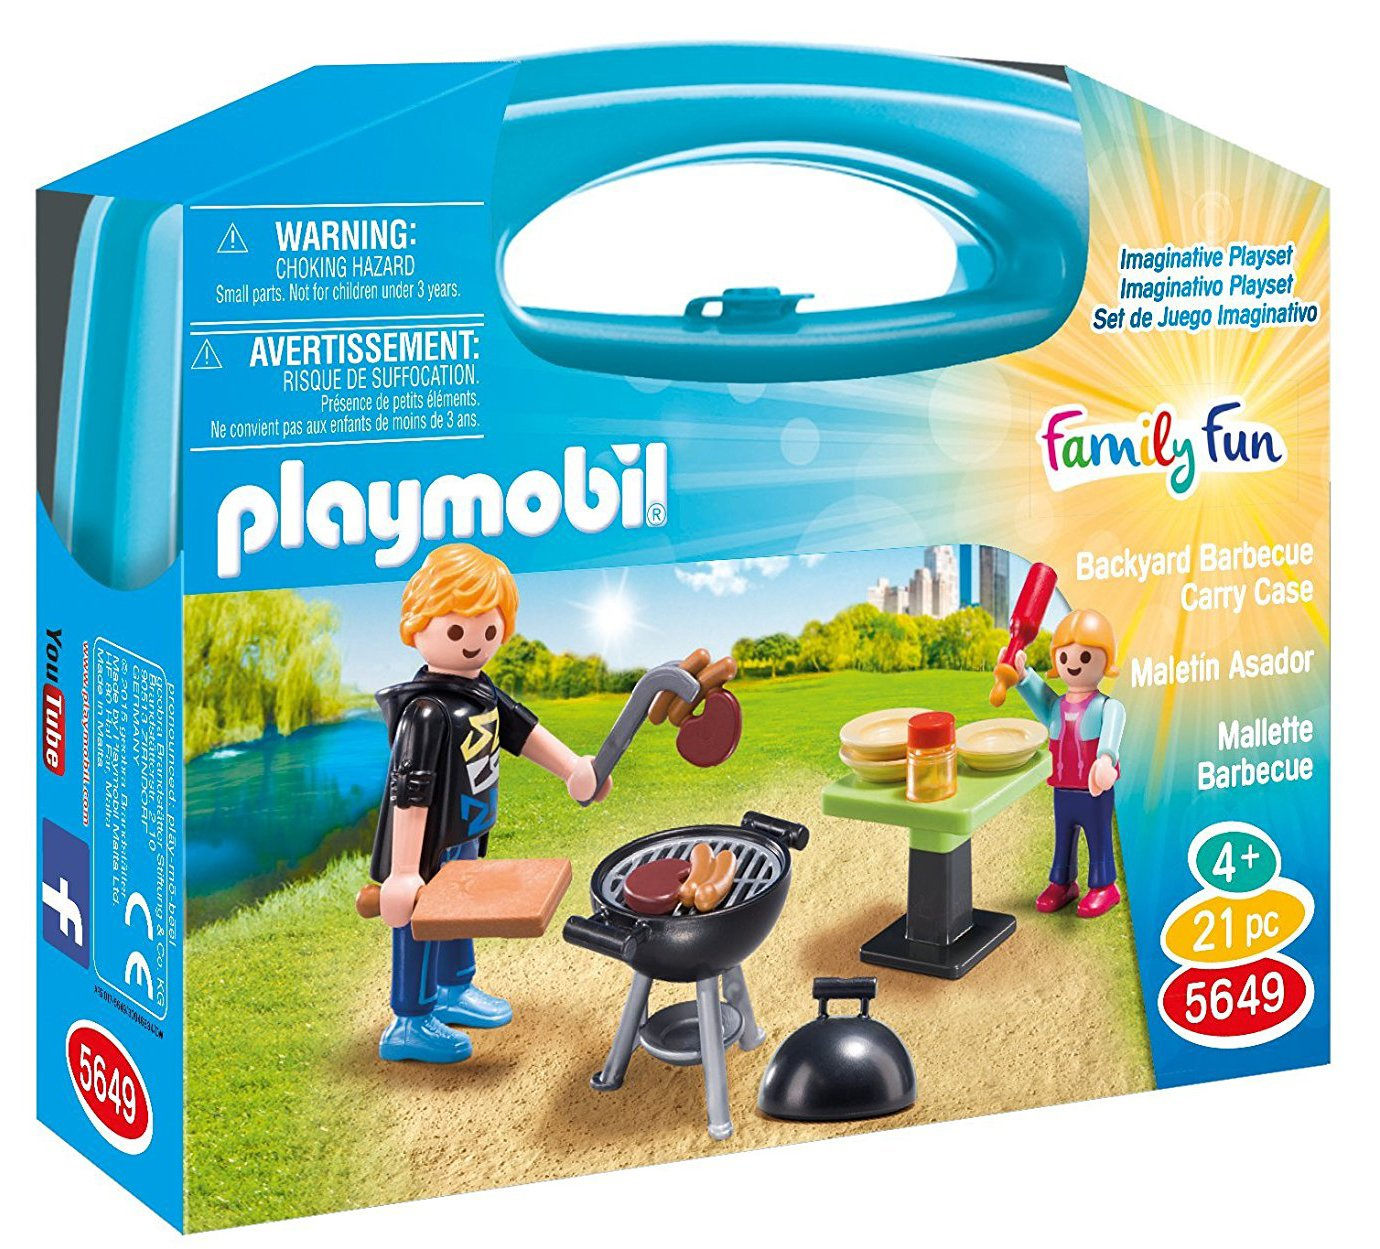 playmobil backyard barbecue carry case - 81lvkwwVQ2L - PLAYMOBIL Backyard Barbecue Carry Case